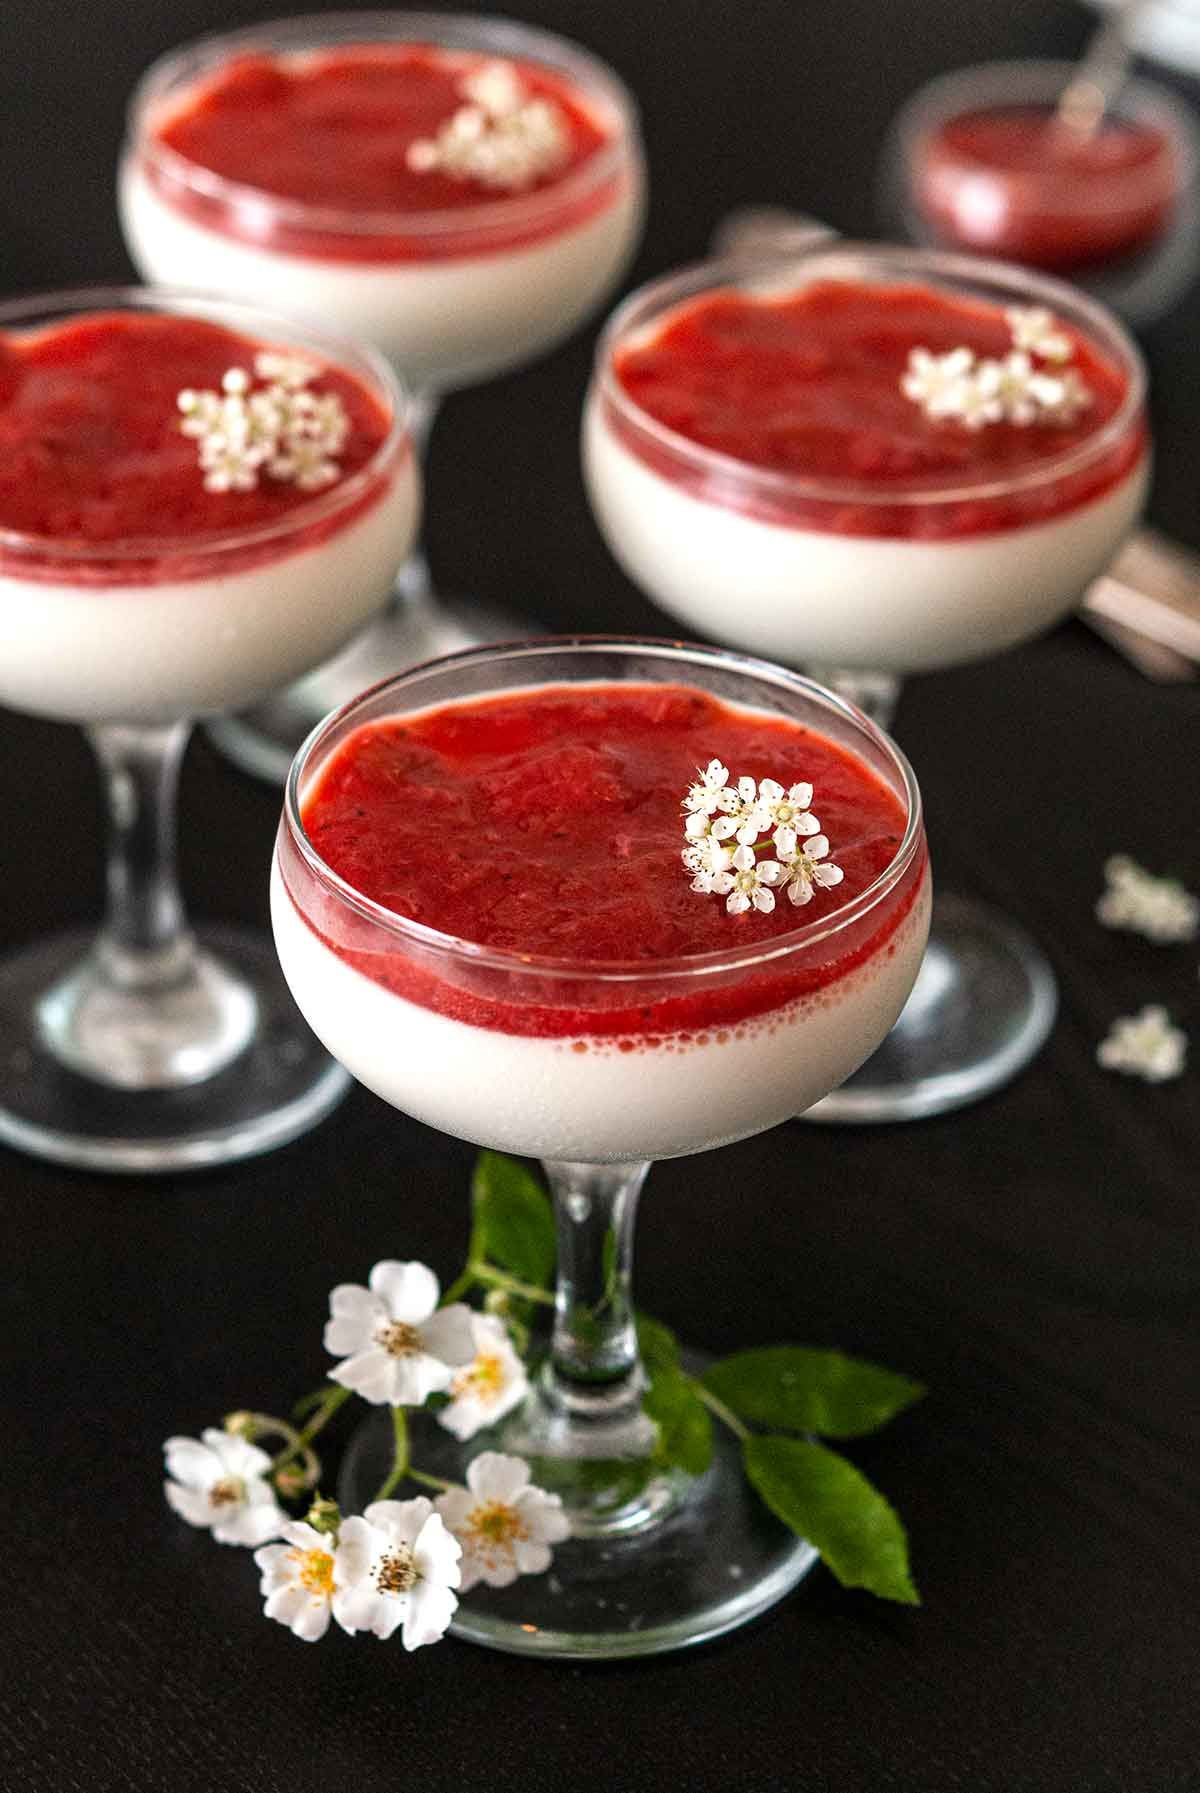 4 glasses of panna cotta with strawberry-rhubarb compote, garnished with flowers, on a table.